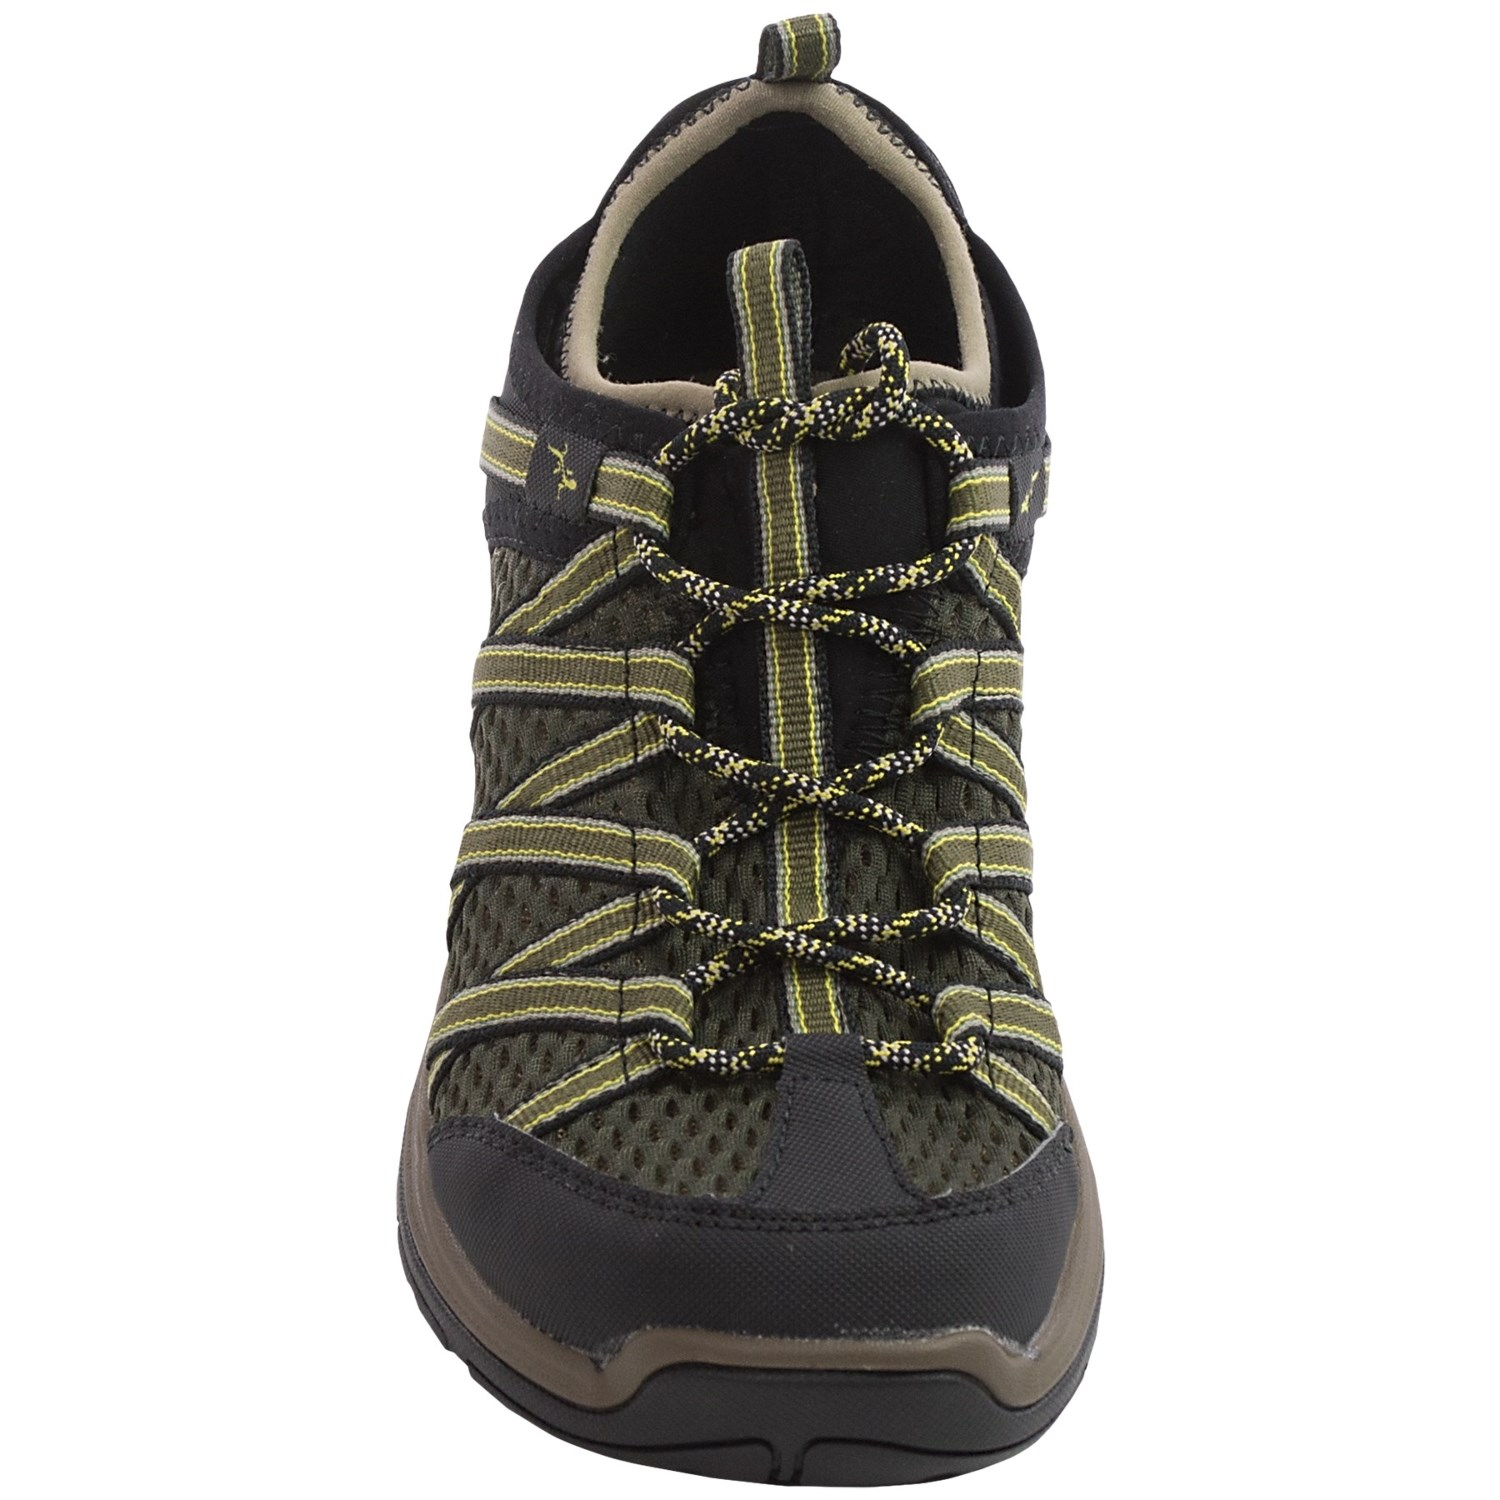 bec24ec39a17 Chaco OutCross Evo 2 Water Shoes (For Men) - Save 45%